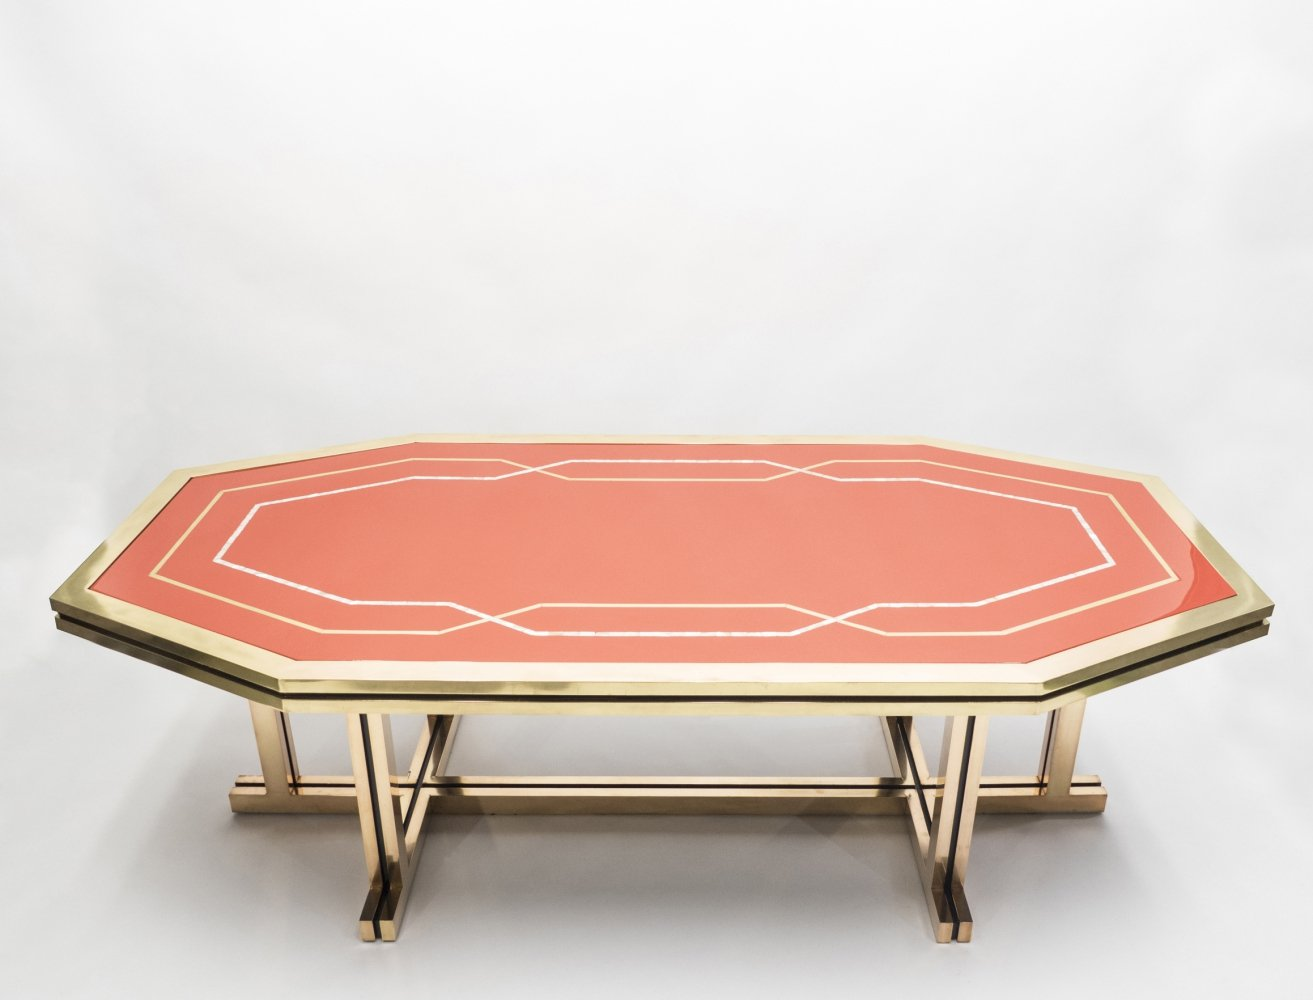 Unique red lacquer & brass Maison Jansen dining table, 1970s